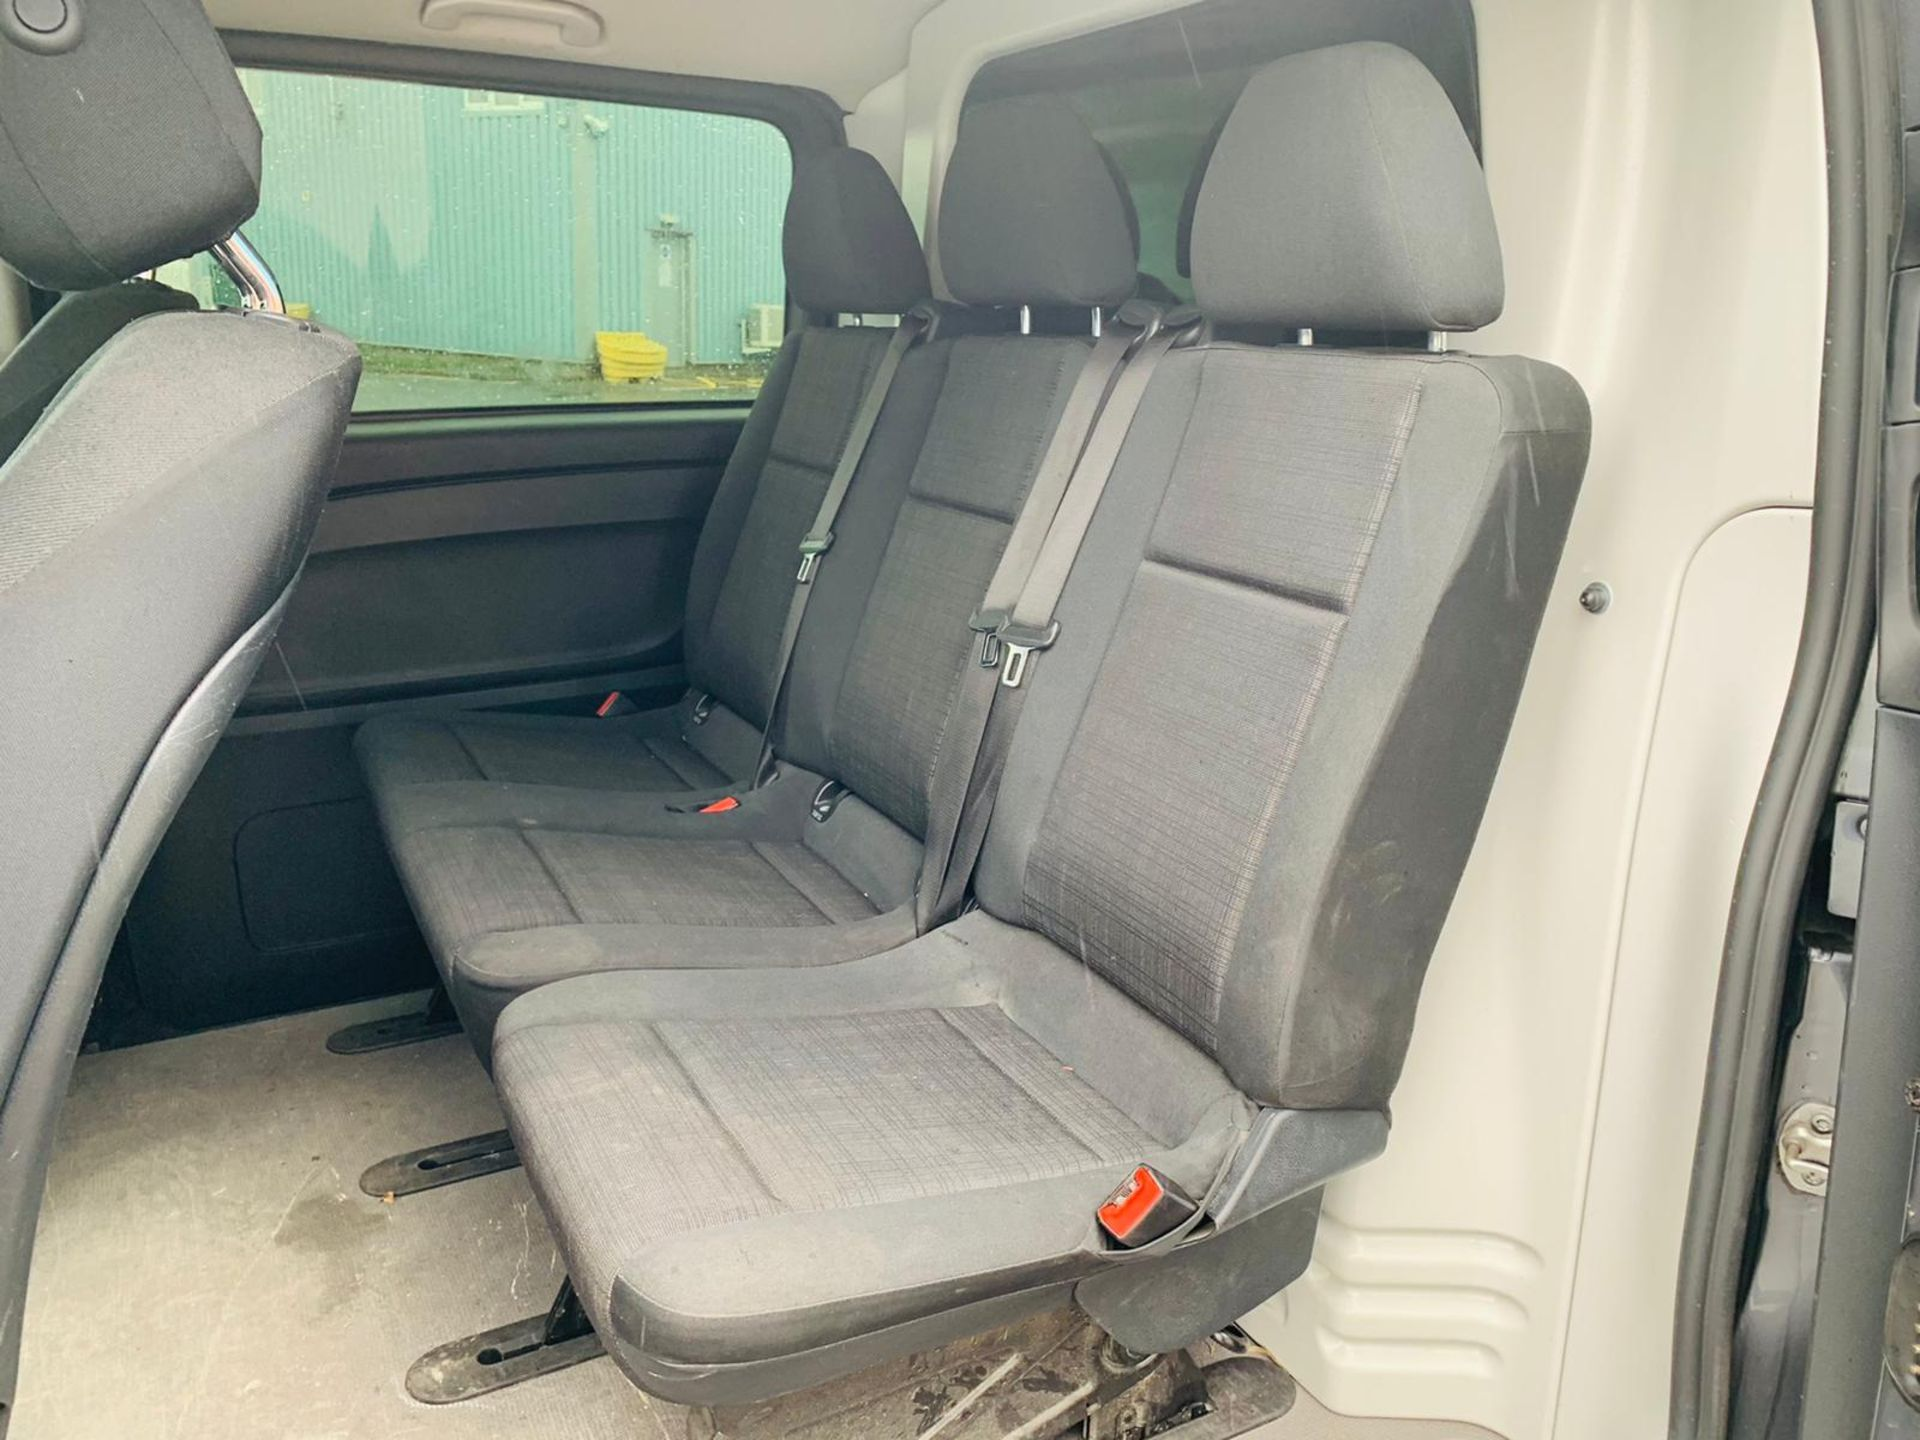 Mercedes Vito 114 Bluetec Dualiner/Crew Van - Auto - Air Con - 2018 Model- 1 Owner From New - Image 13 of 30